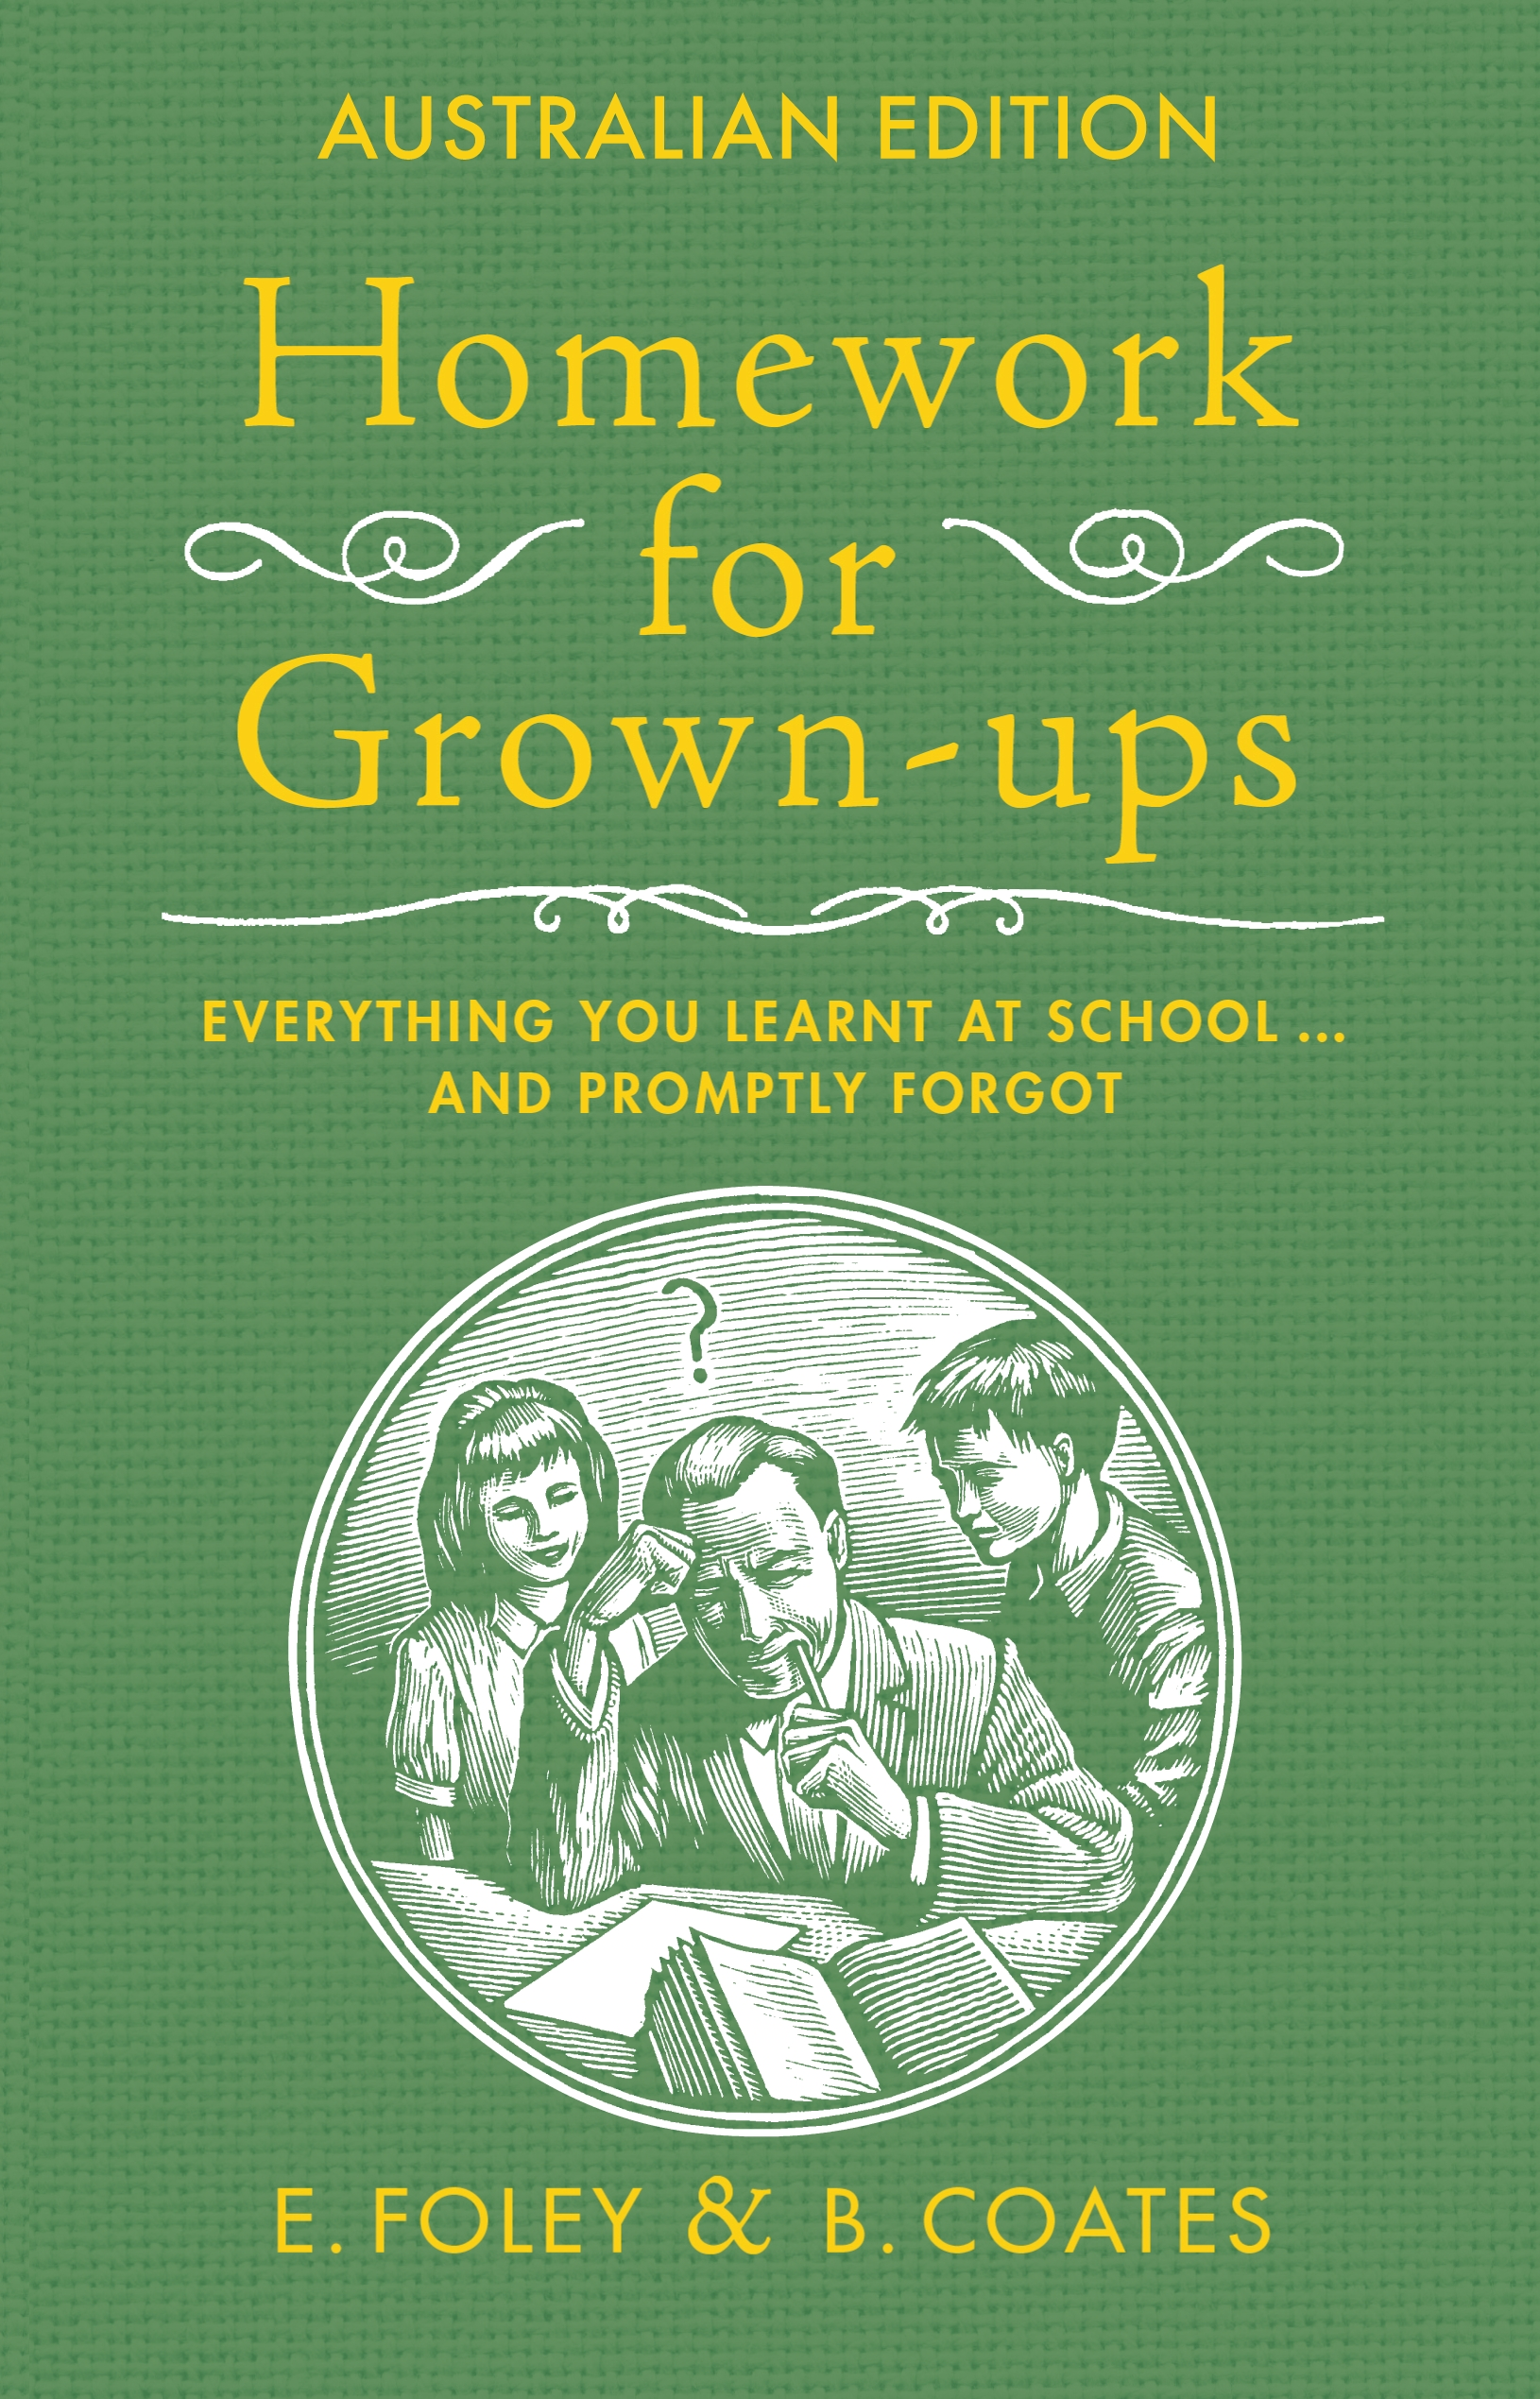 Homework for grown ups book